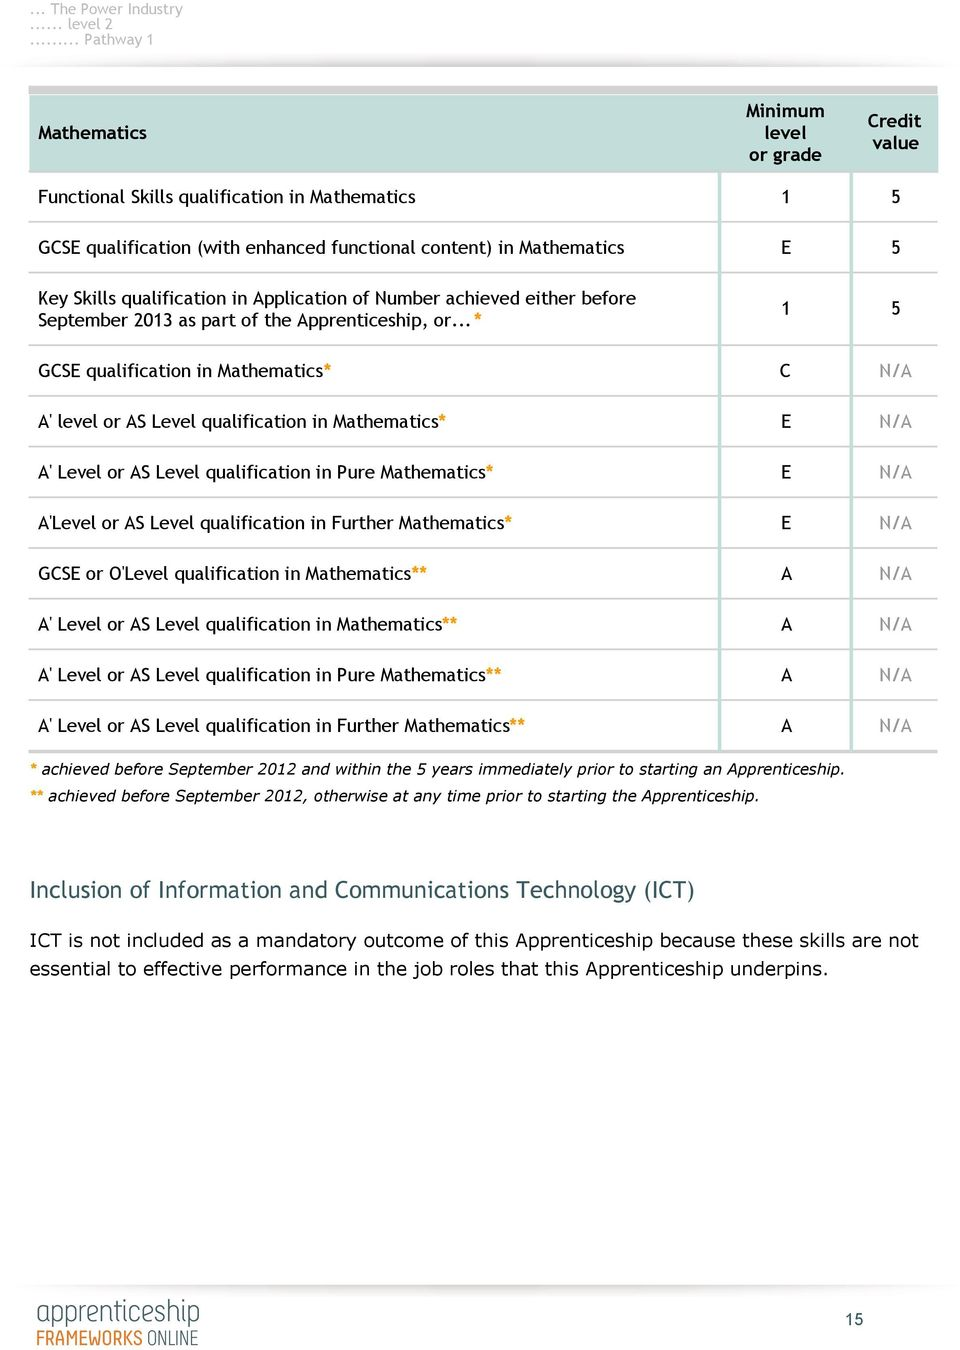 Application of Number achieved either before September 2013 as part of the Apprenticeship, or.